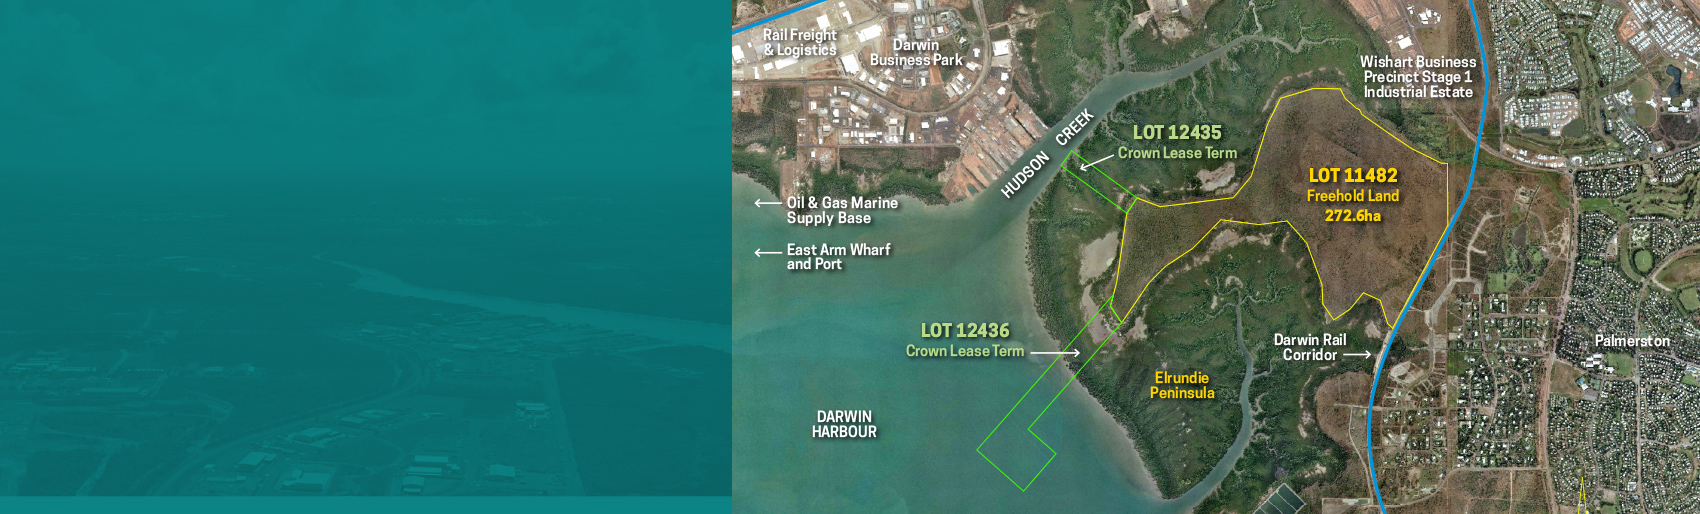 Lot 11482 Elrundie Peninsula